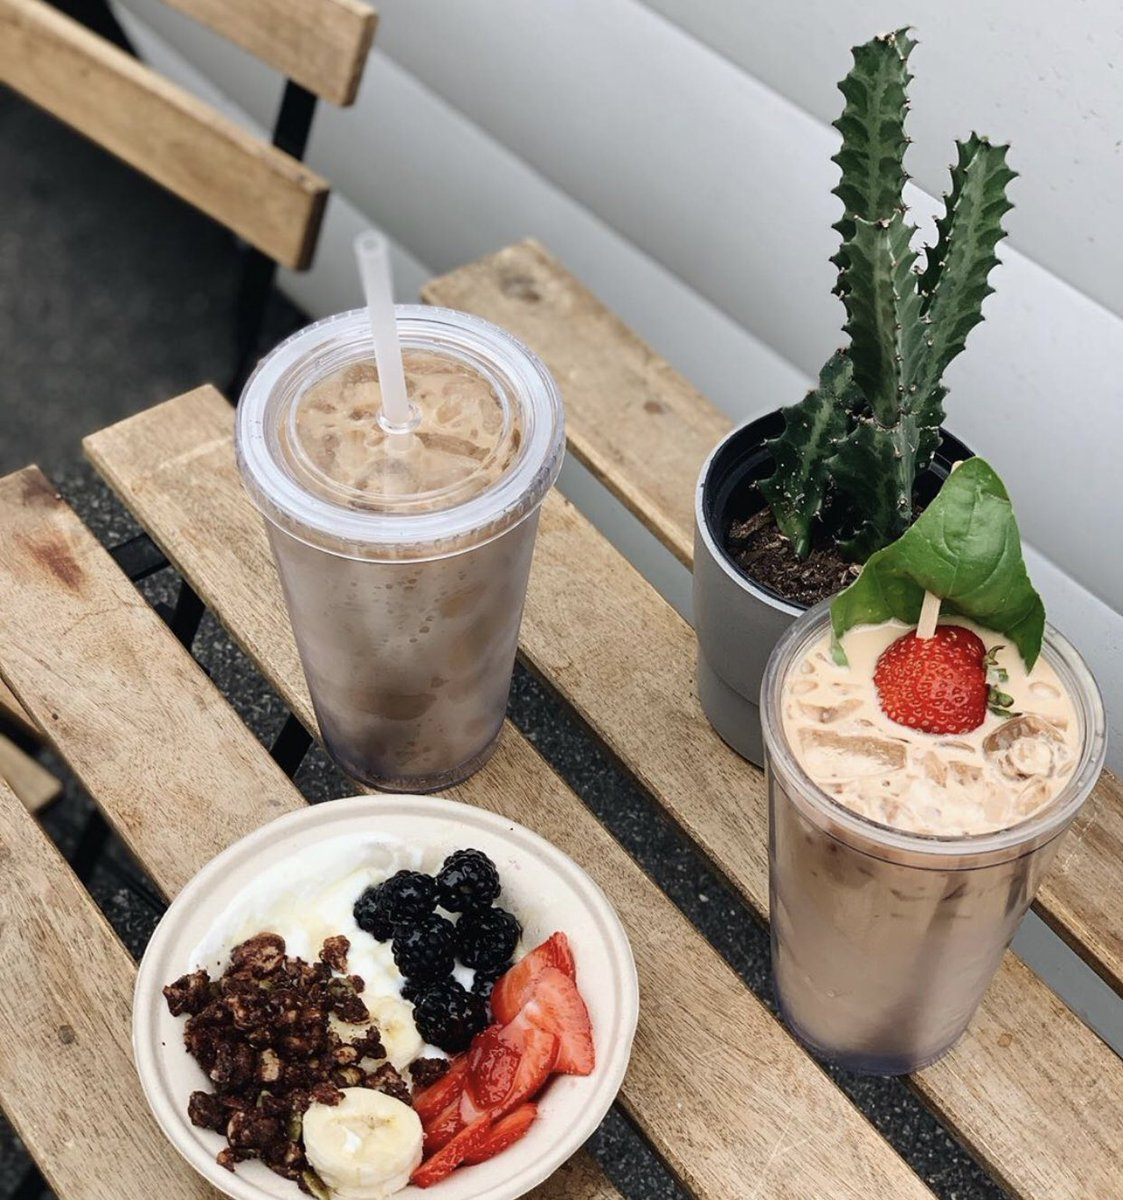 Tis the season for iced coffee at the Wednesday Farmers' Market from @TheWildWayCoffe! 📷@kcplates #visitop #kcop #farmersmarket #wildwaycoffee #icedcoffee #latte #summer #overlandpark